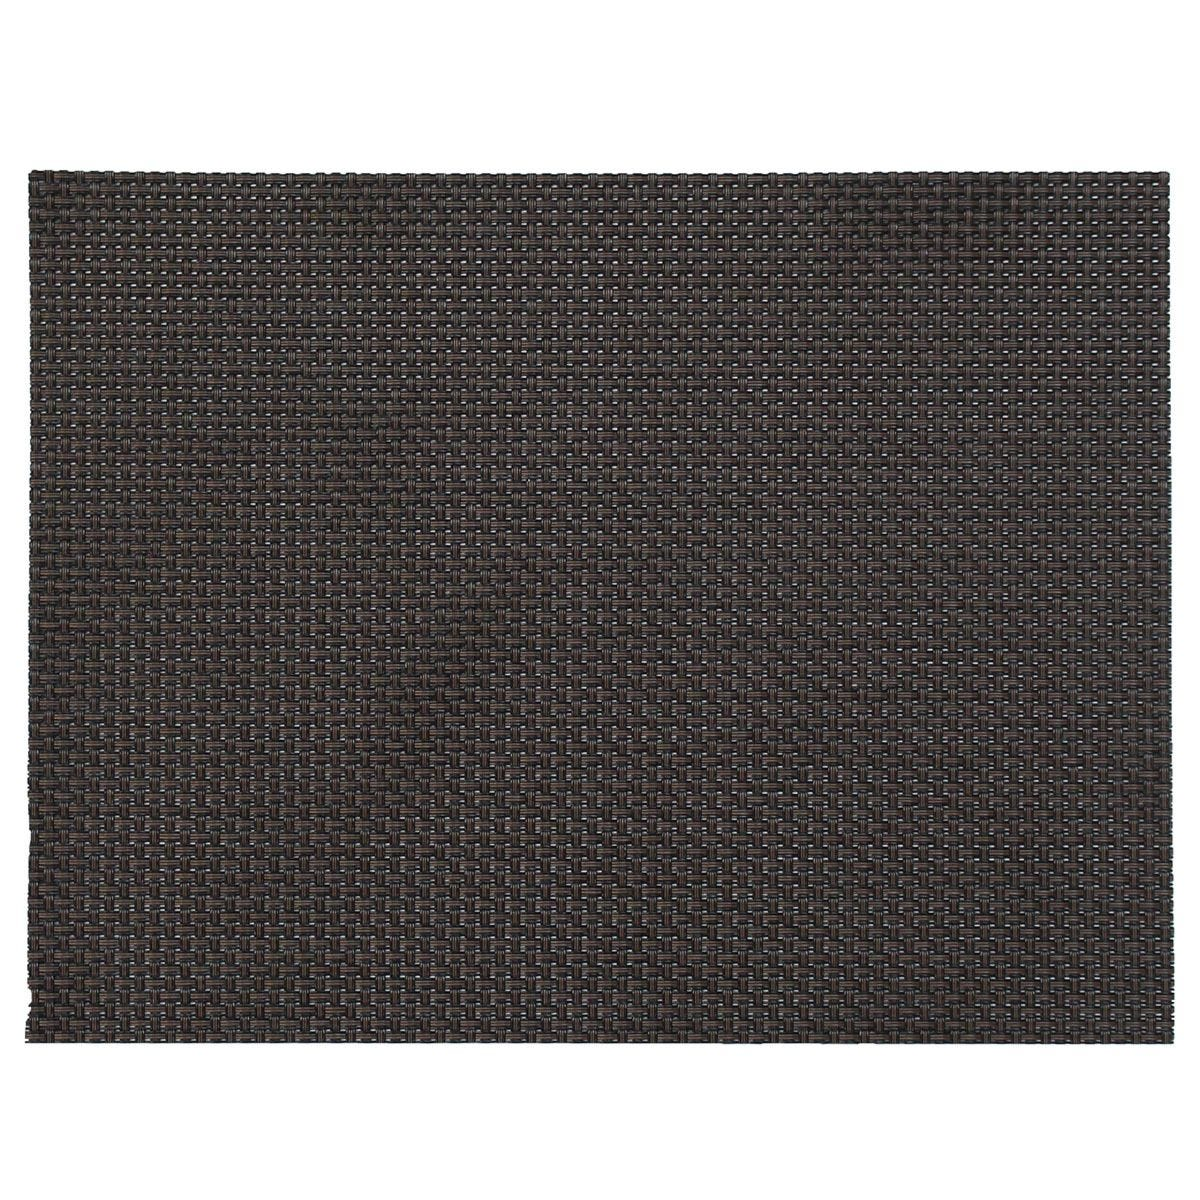 Woven Placemat - Brown